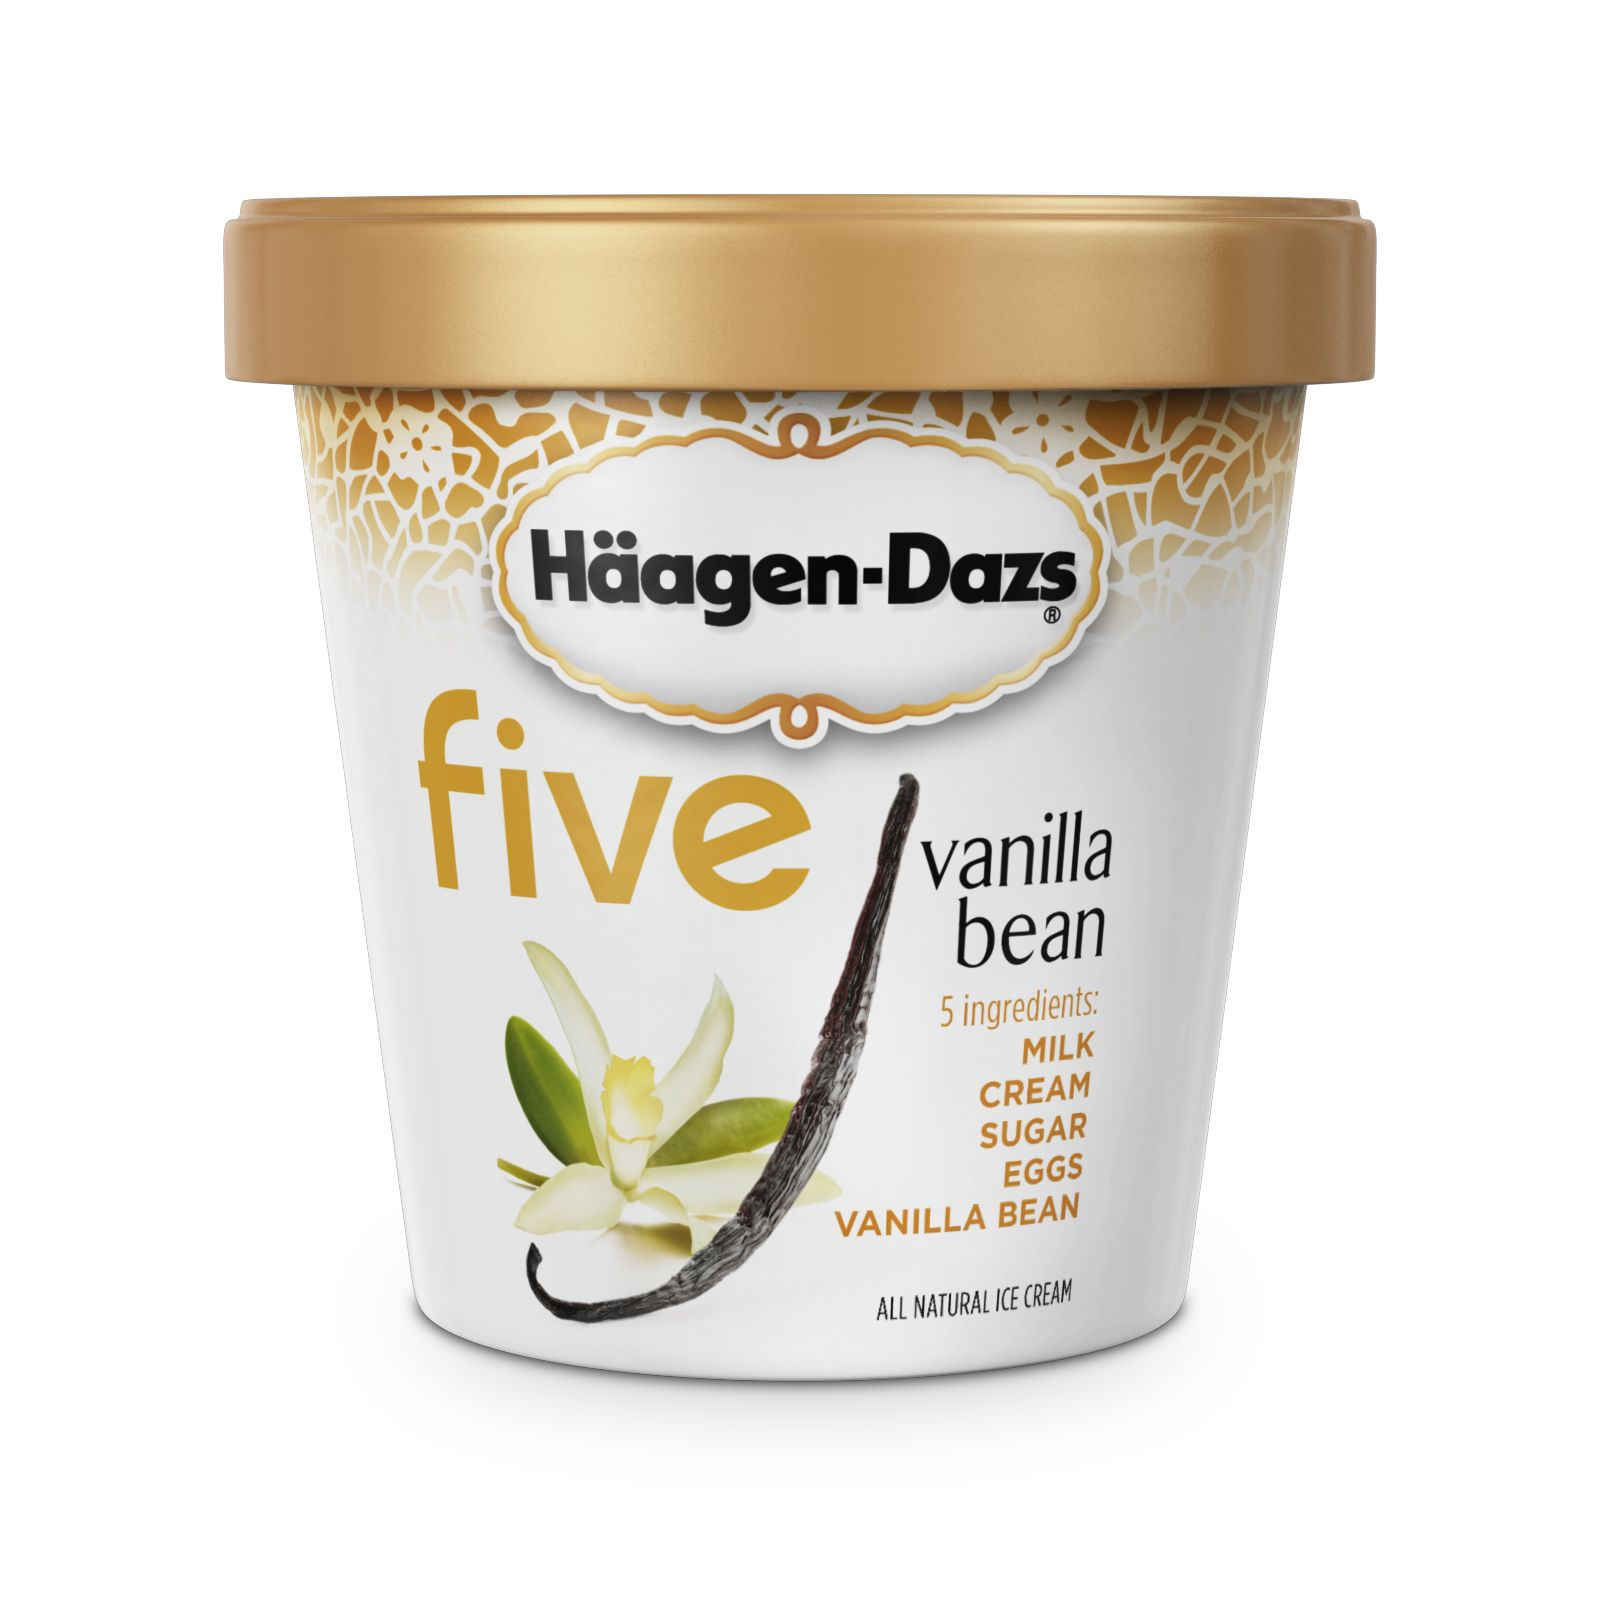 haagen dazs external environment General mills: häagen-dazs ice cream brand it's a singular pleasure that millions of people enjoy every day and night.